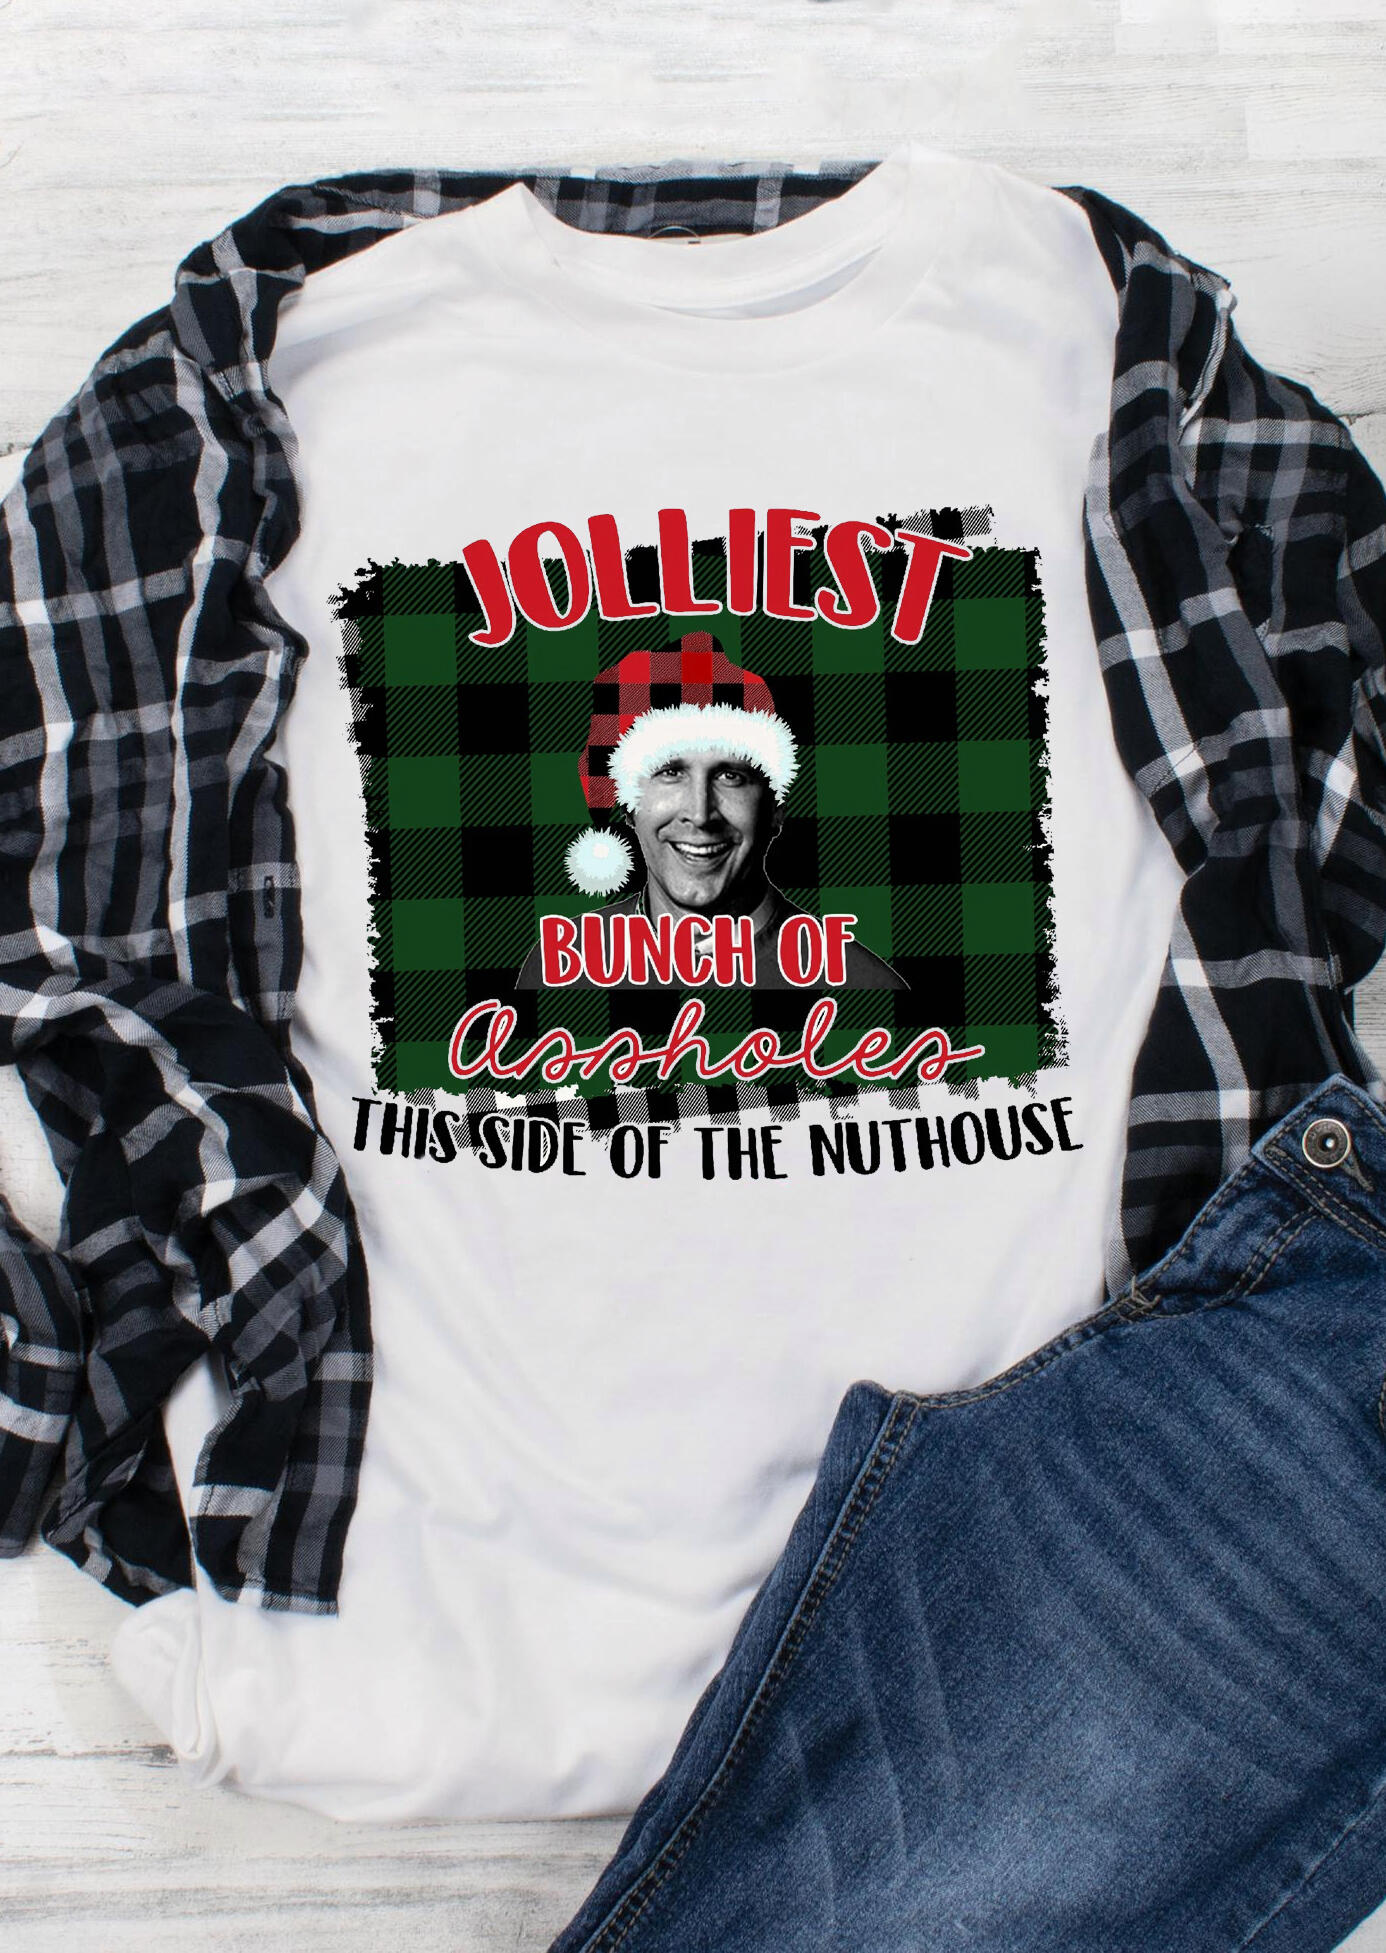 Tees T-shirts Jolliest Bunch Of Assholes Plaid Printed Christmas T-Shirt Tee - White. Size: ,M,XL